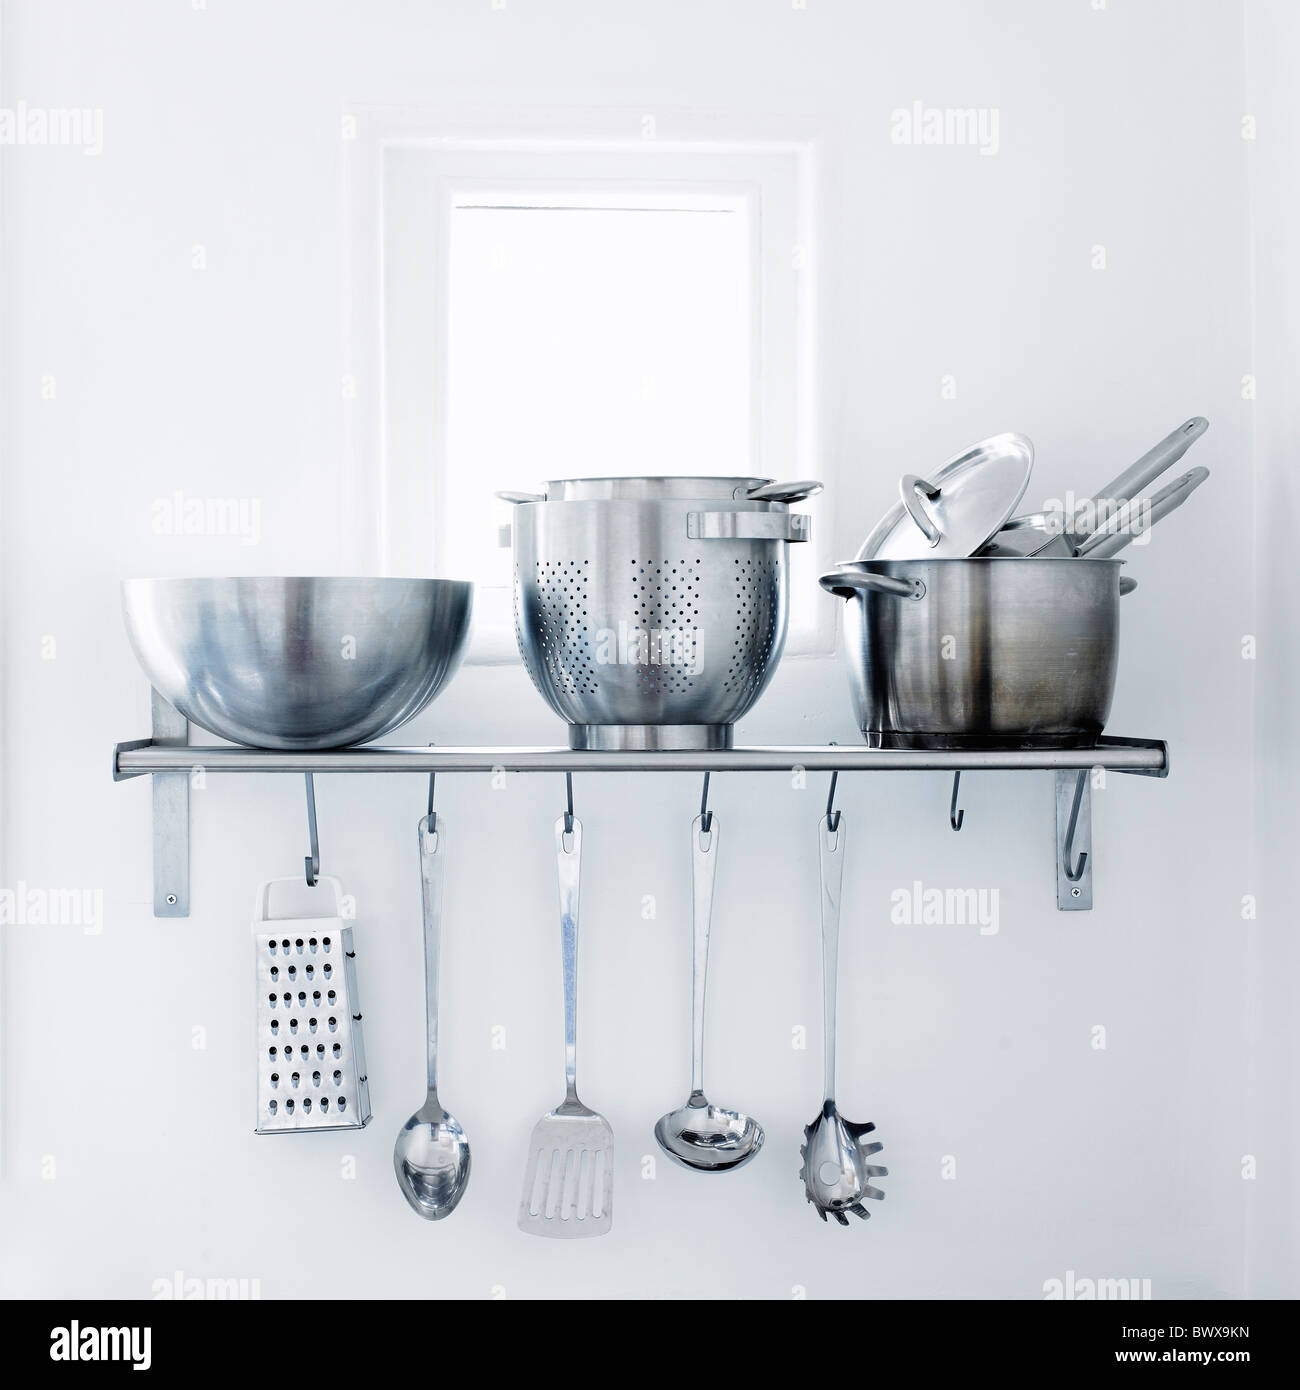 Chrome Kitchen Utensils. - Stock Image